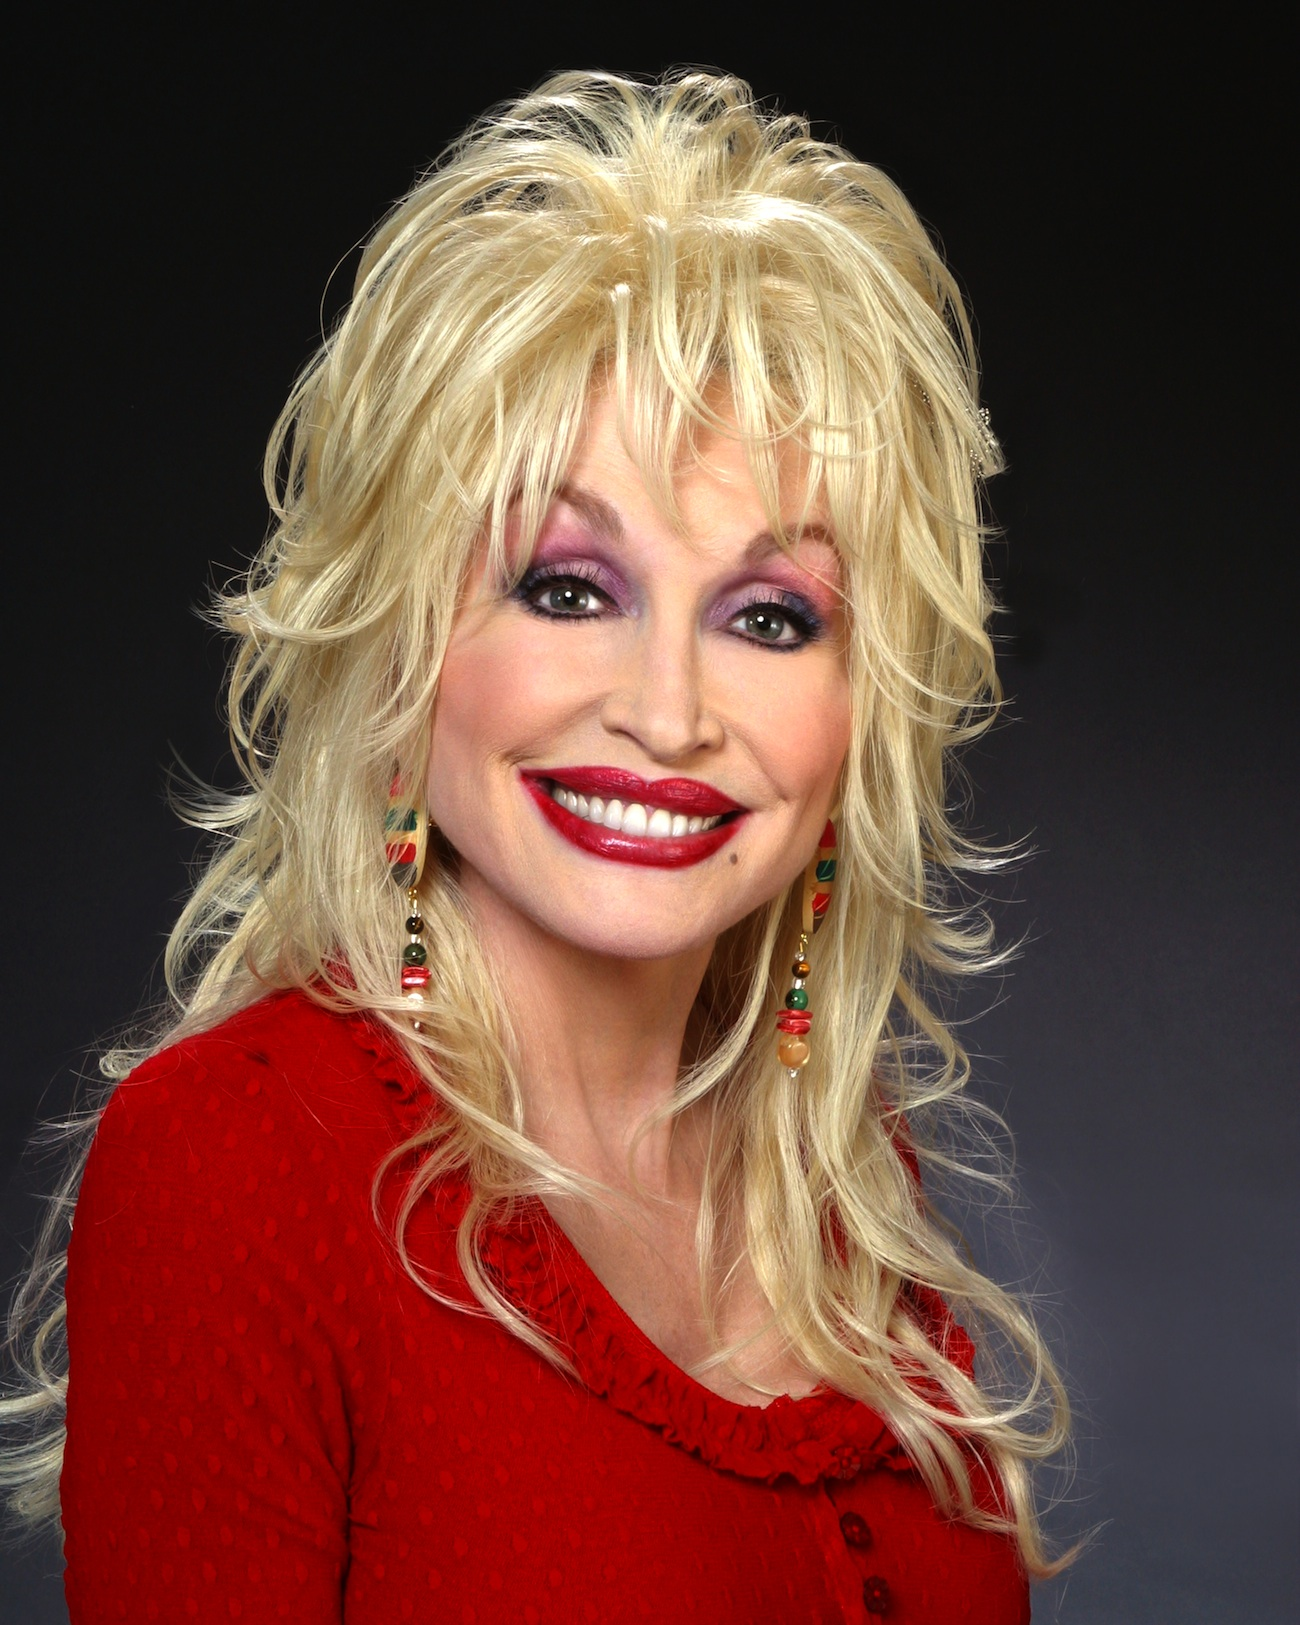 Dolly Parton and Her Image - Dolly Parton Pinball Machine in the ...